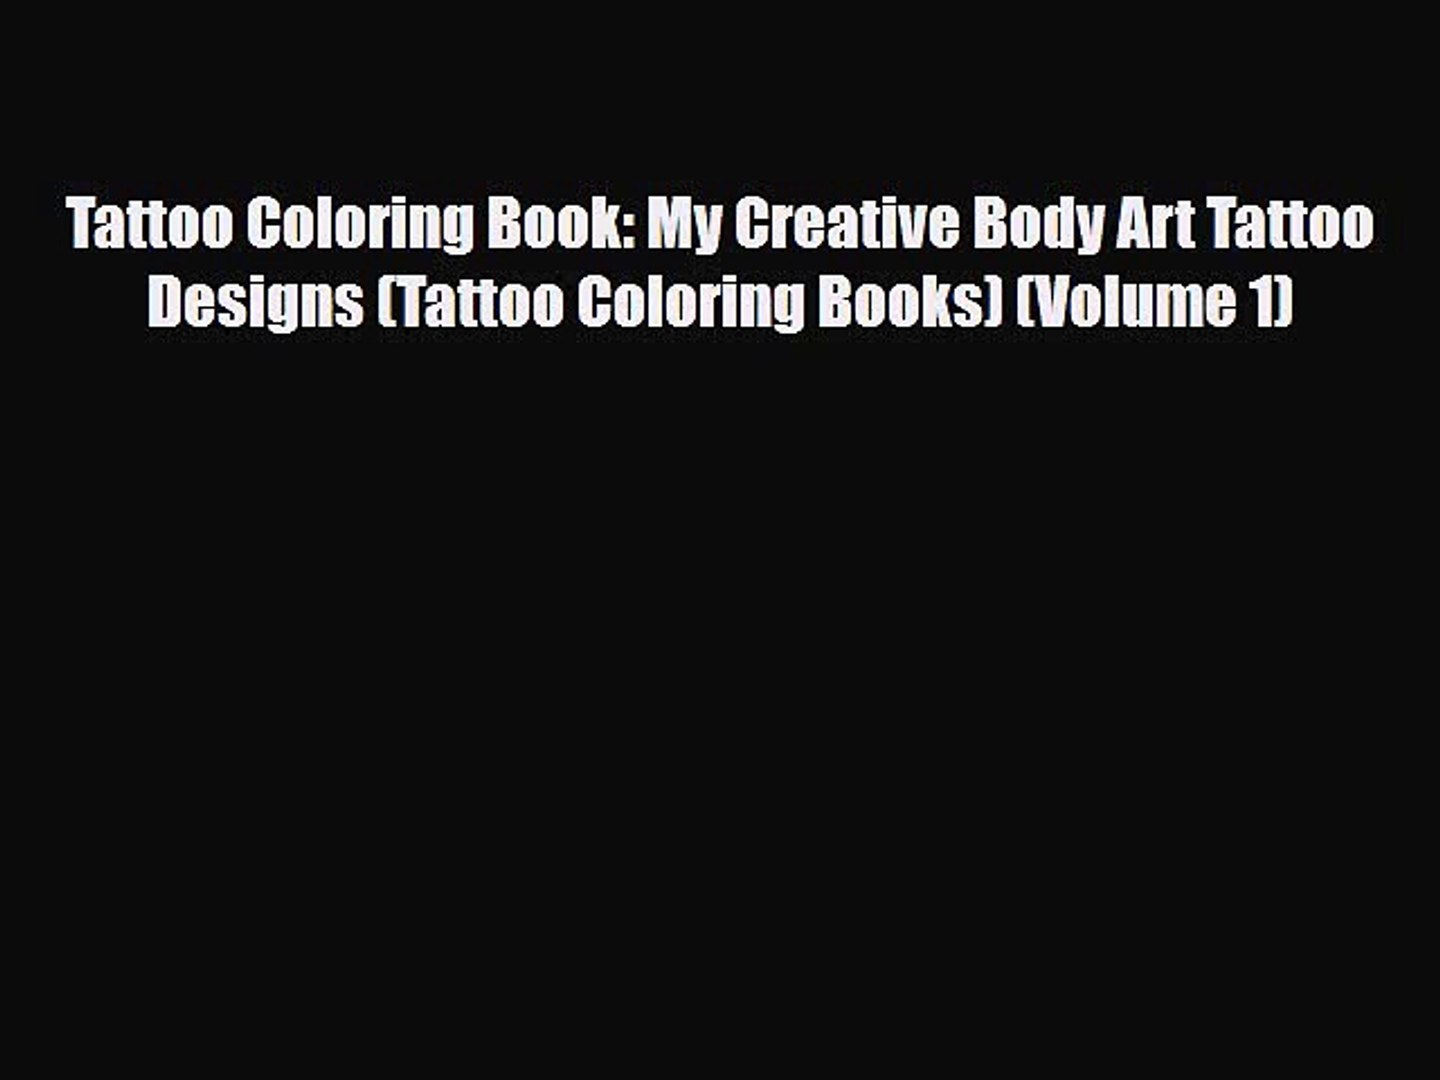 Pdf Download Tattoo Coloring Book My Creative Body Art Tattoo Designs Tattoo Coloring Books Video Dailymotion